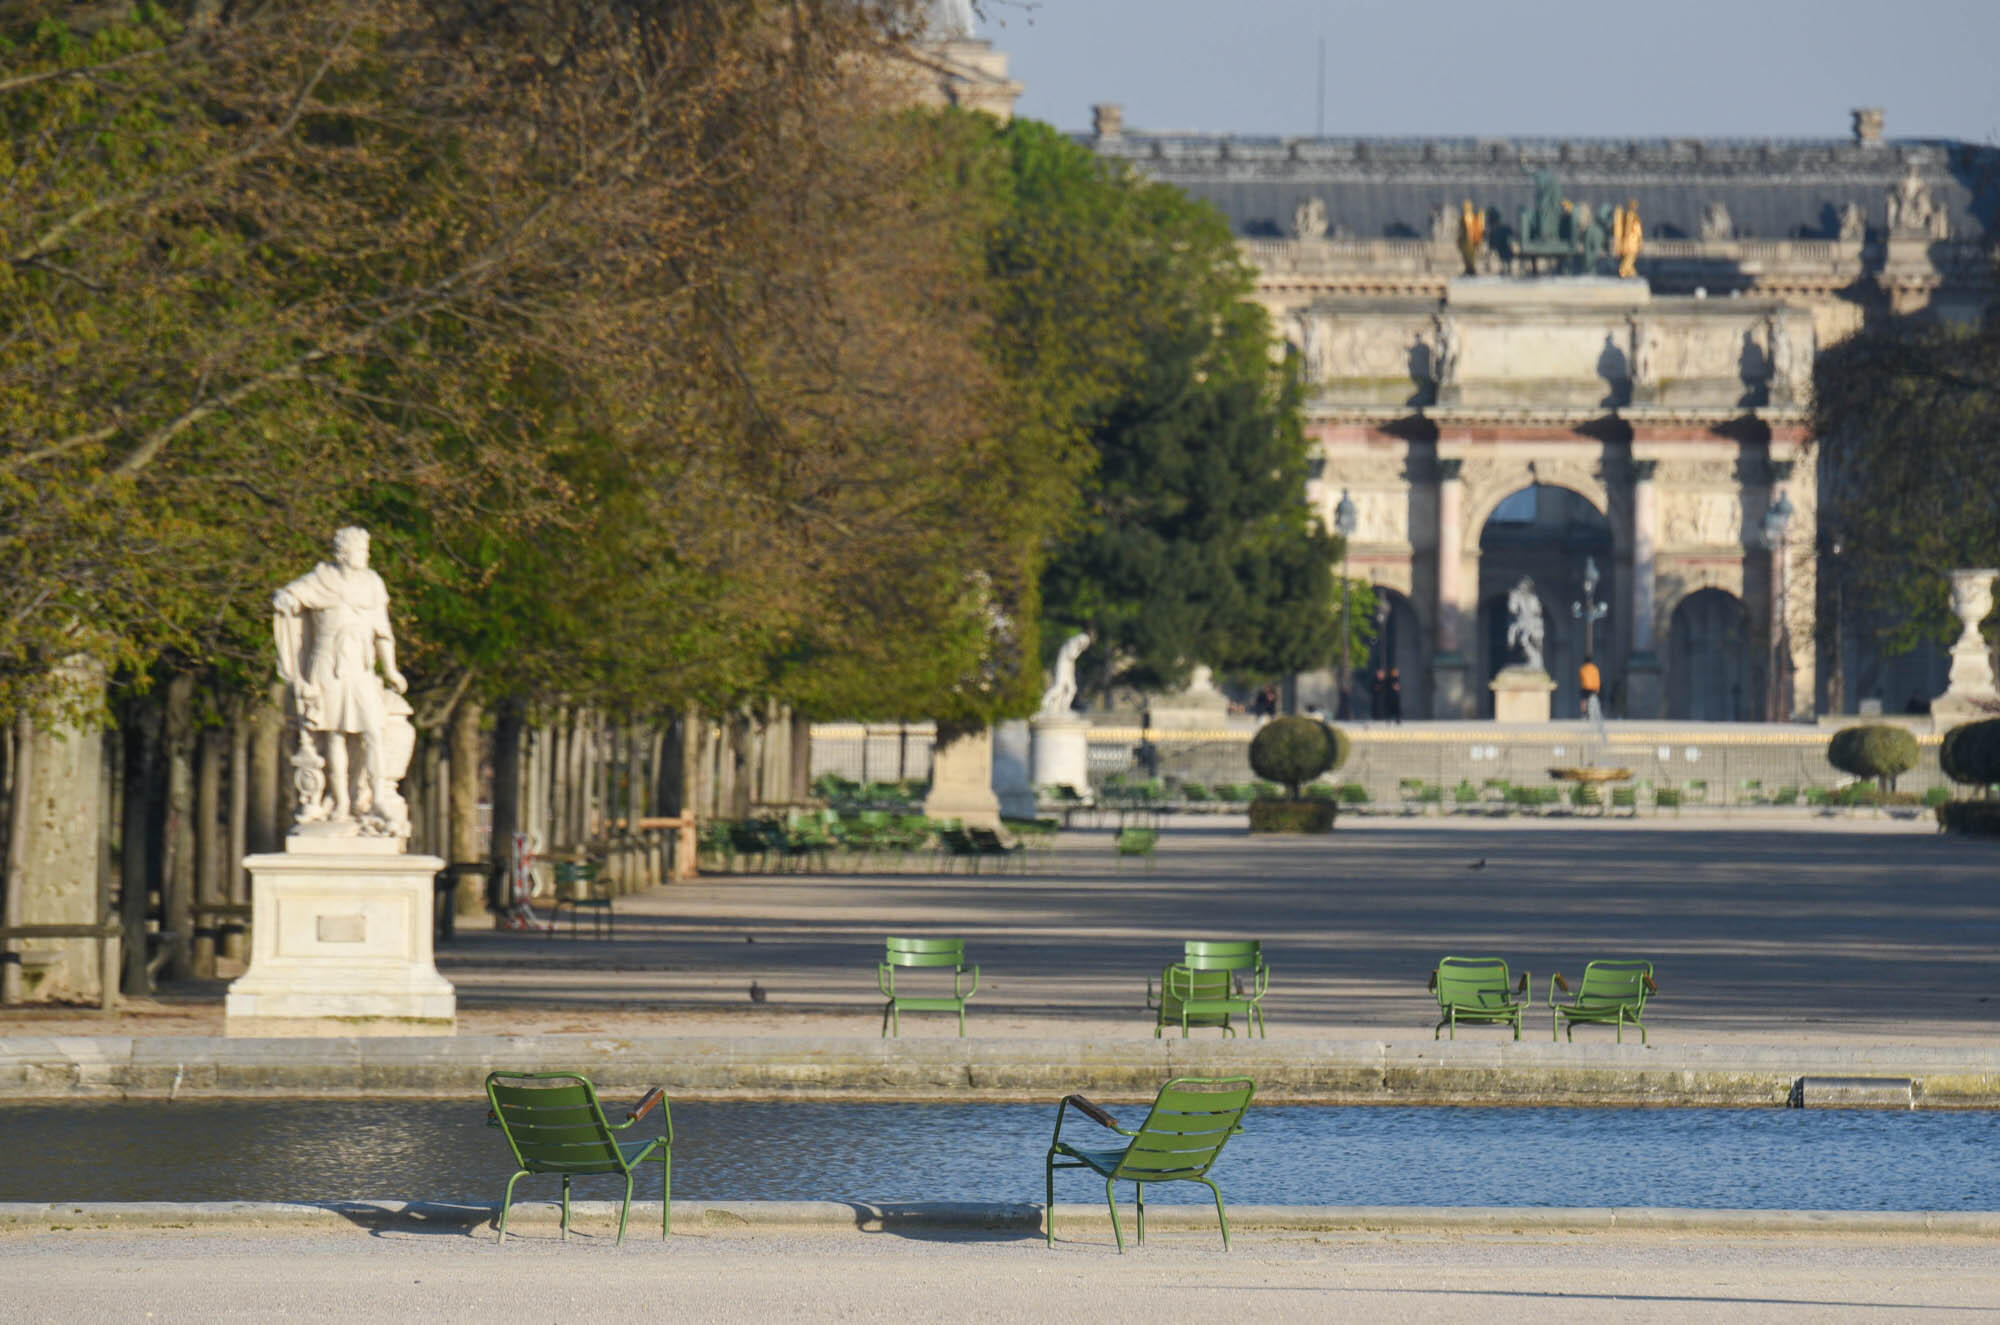 Paris parks have been closed since the beginning of the lockdown, which helps explain why so many people are now running in the streets. Here, empty chairs are seen at the iconic Jardin des Tuileries.